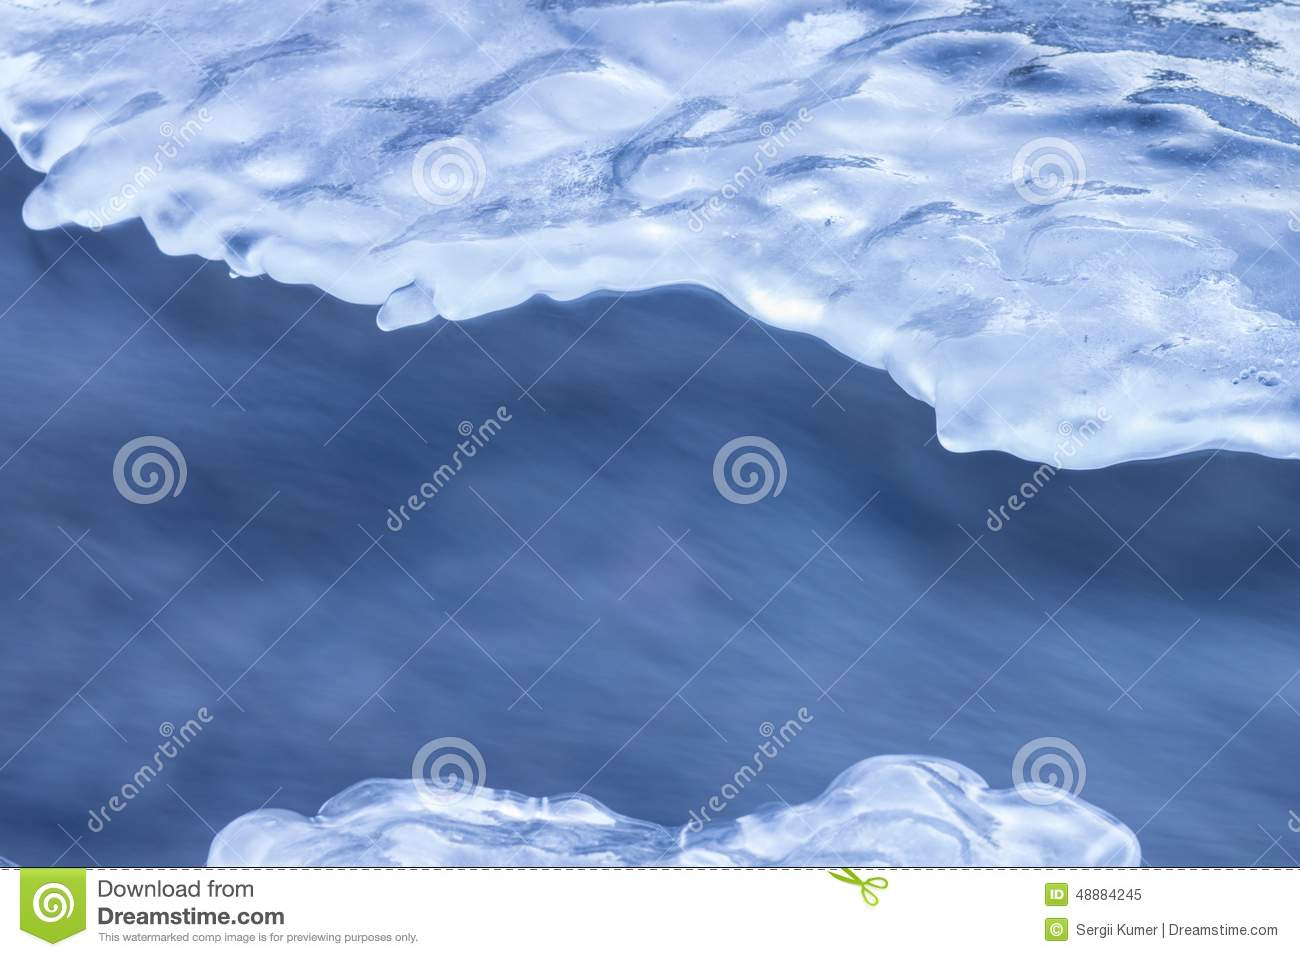 Abstract winter background.